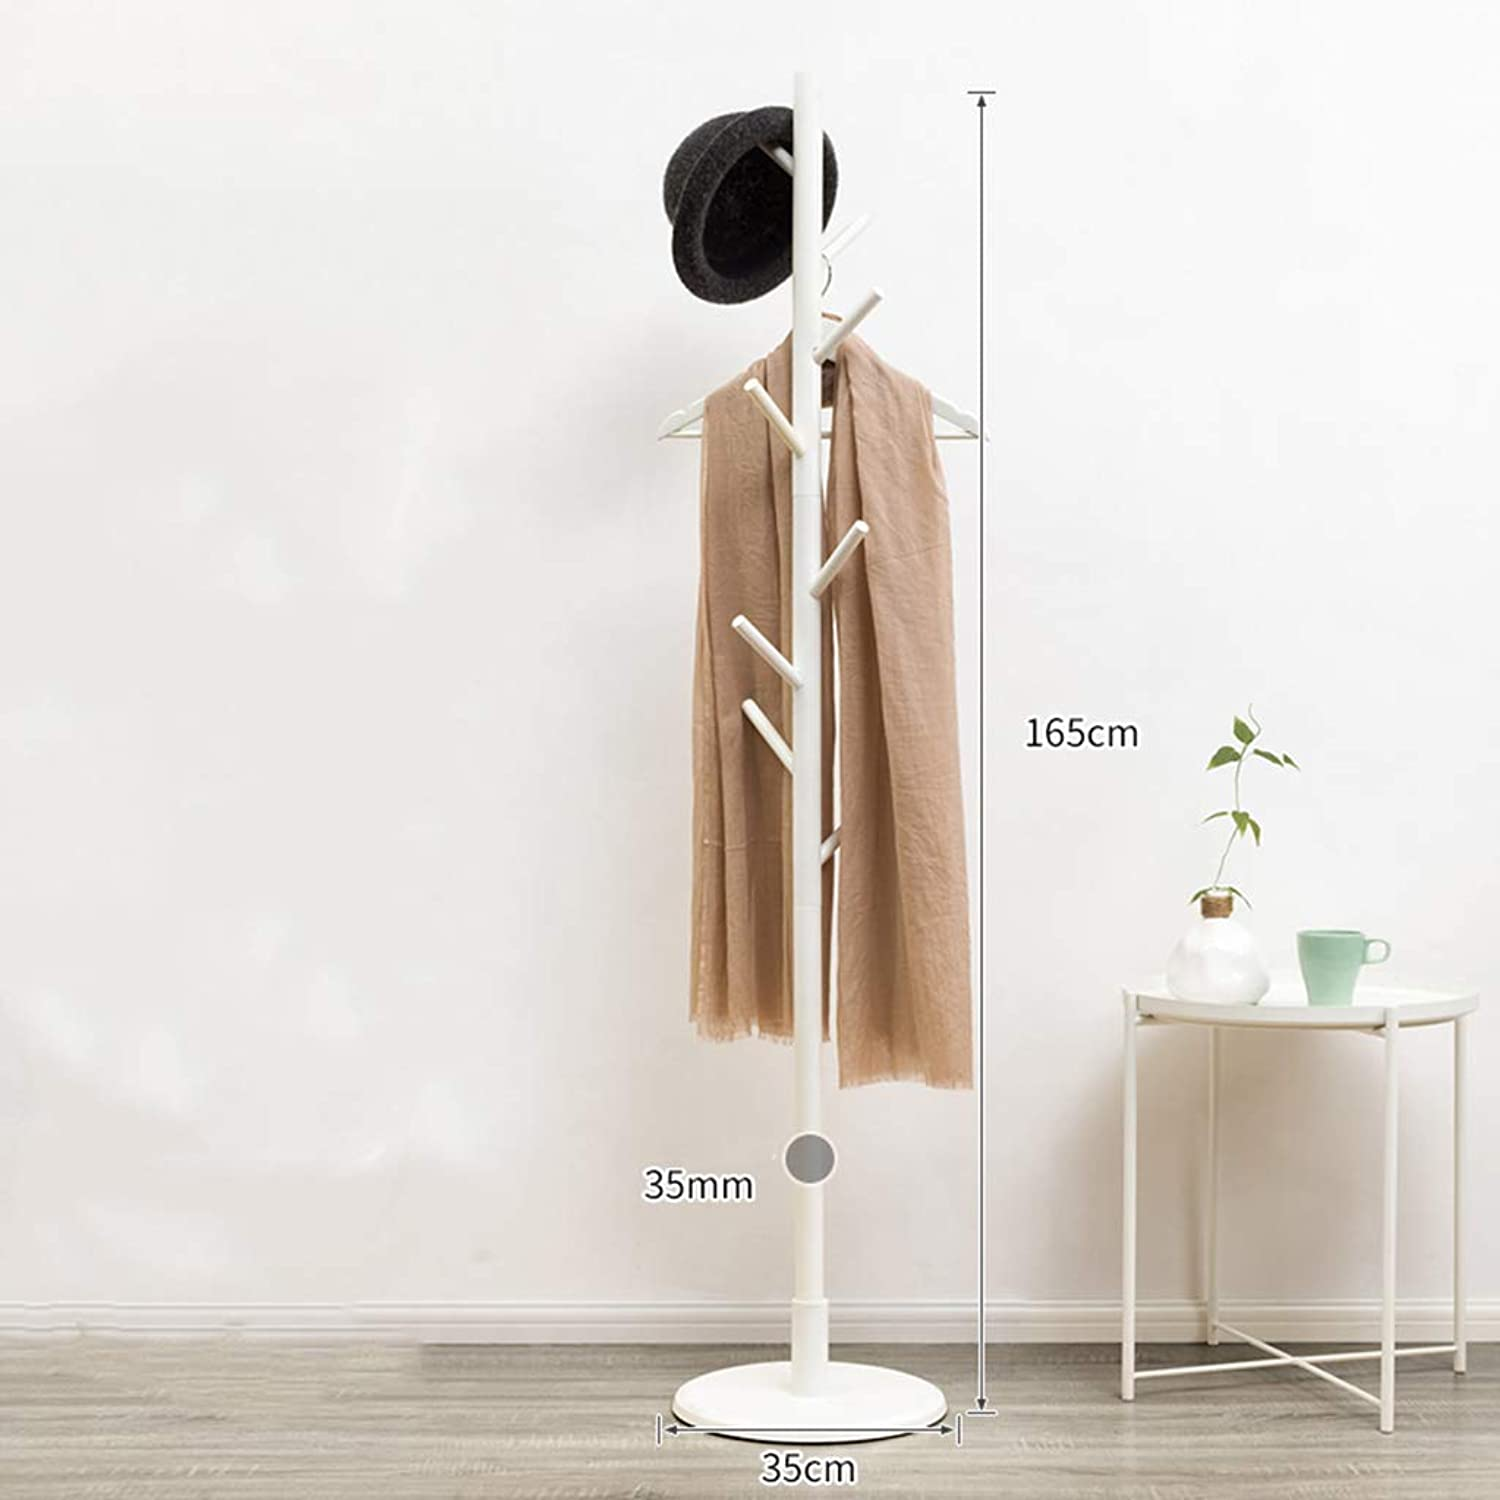 Round Base Rubber Wood Solid Wood Coat Rack Floor Simple Modern Bedroom Hanging Clothes Rack Simple Living Room Storage, Tool-Free Assembly,White